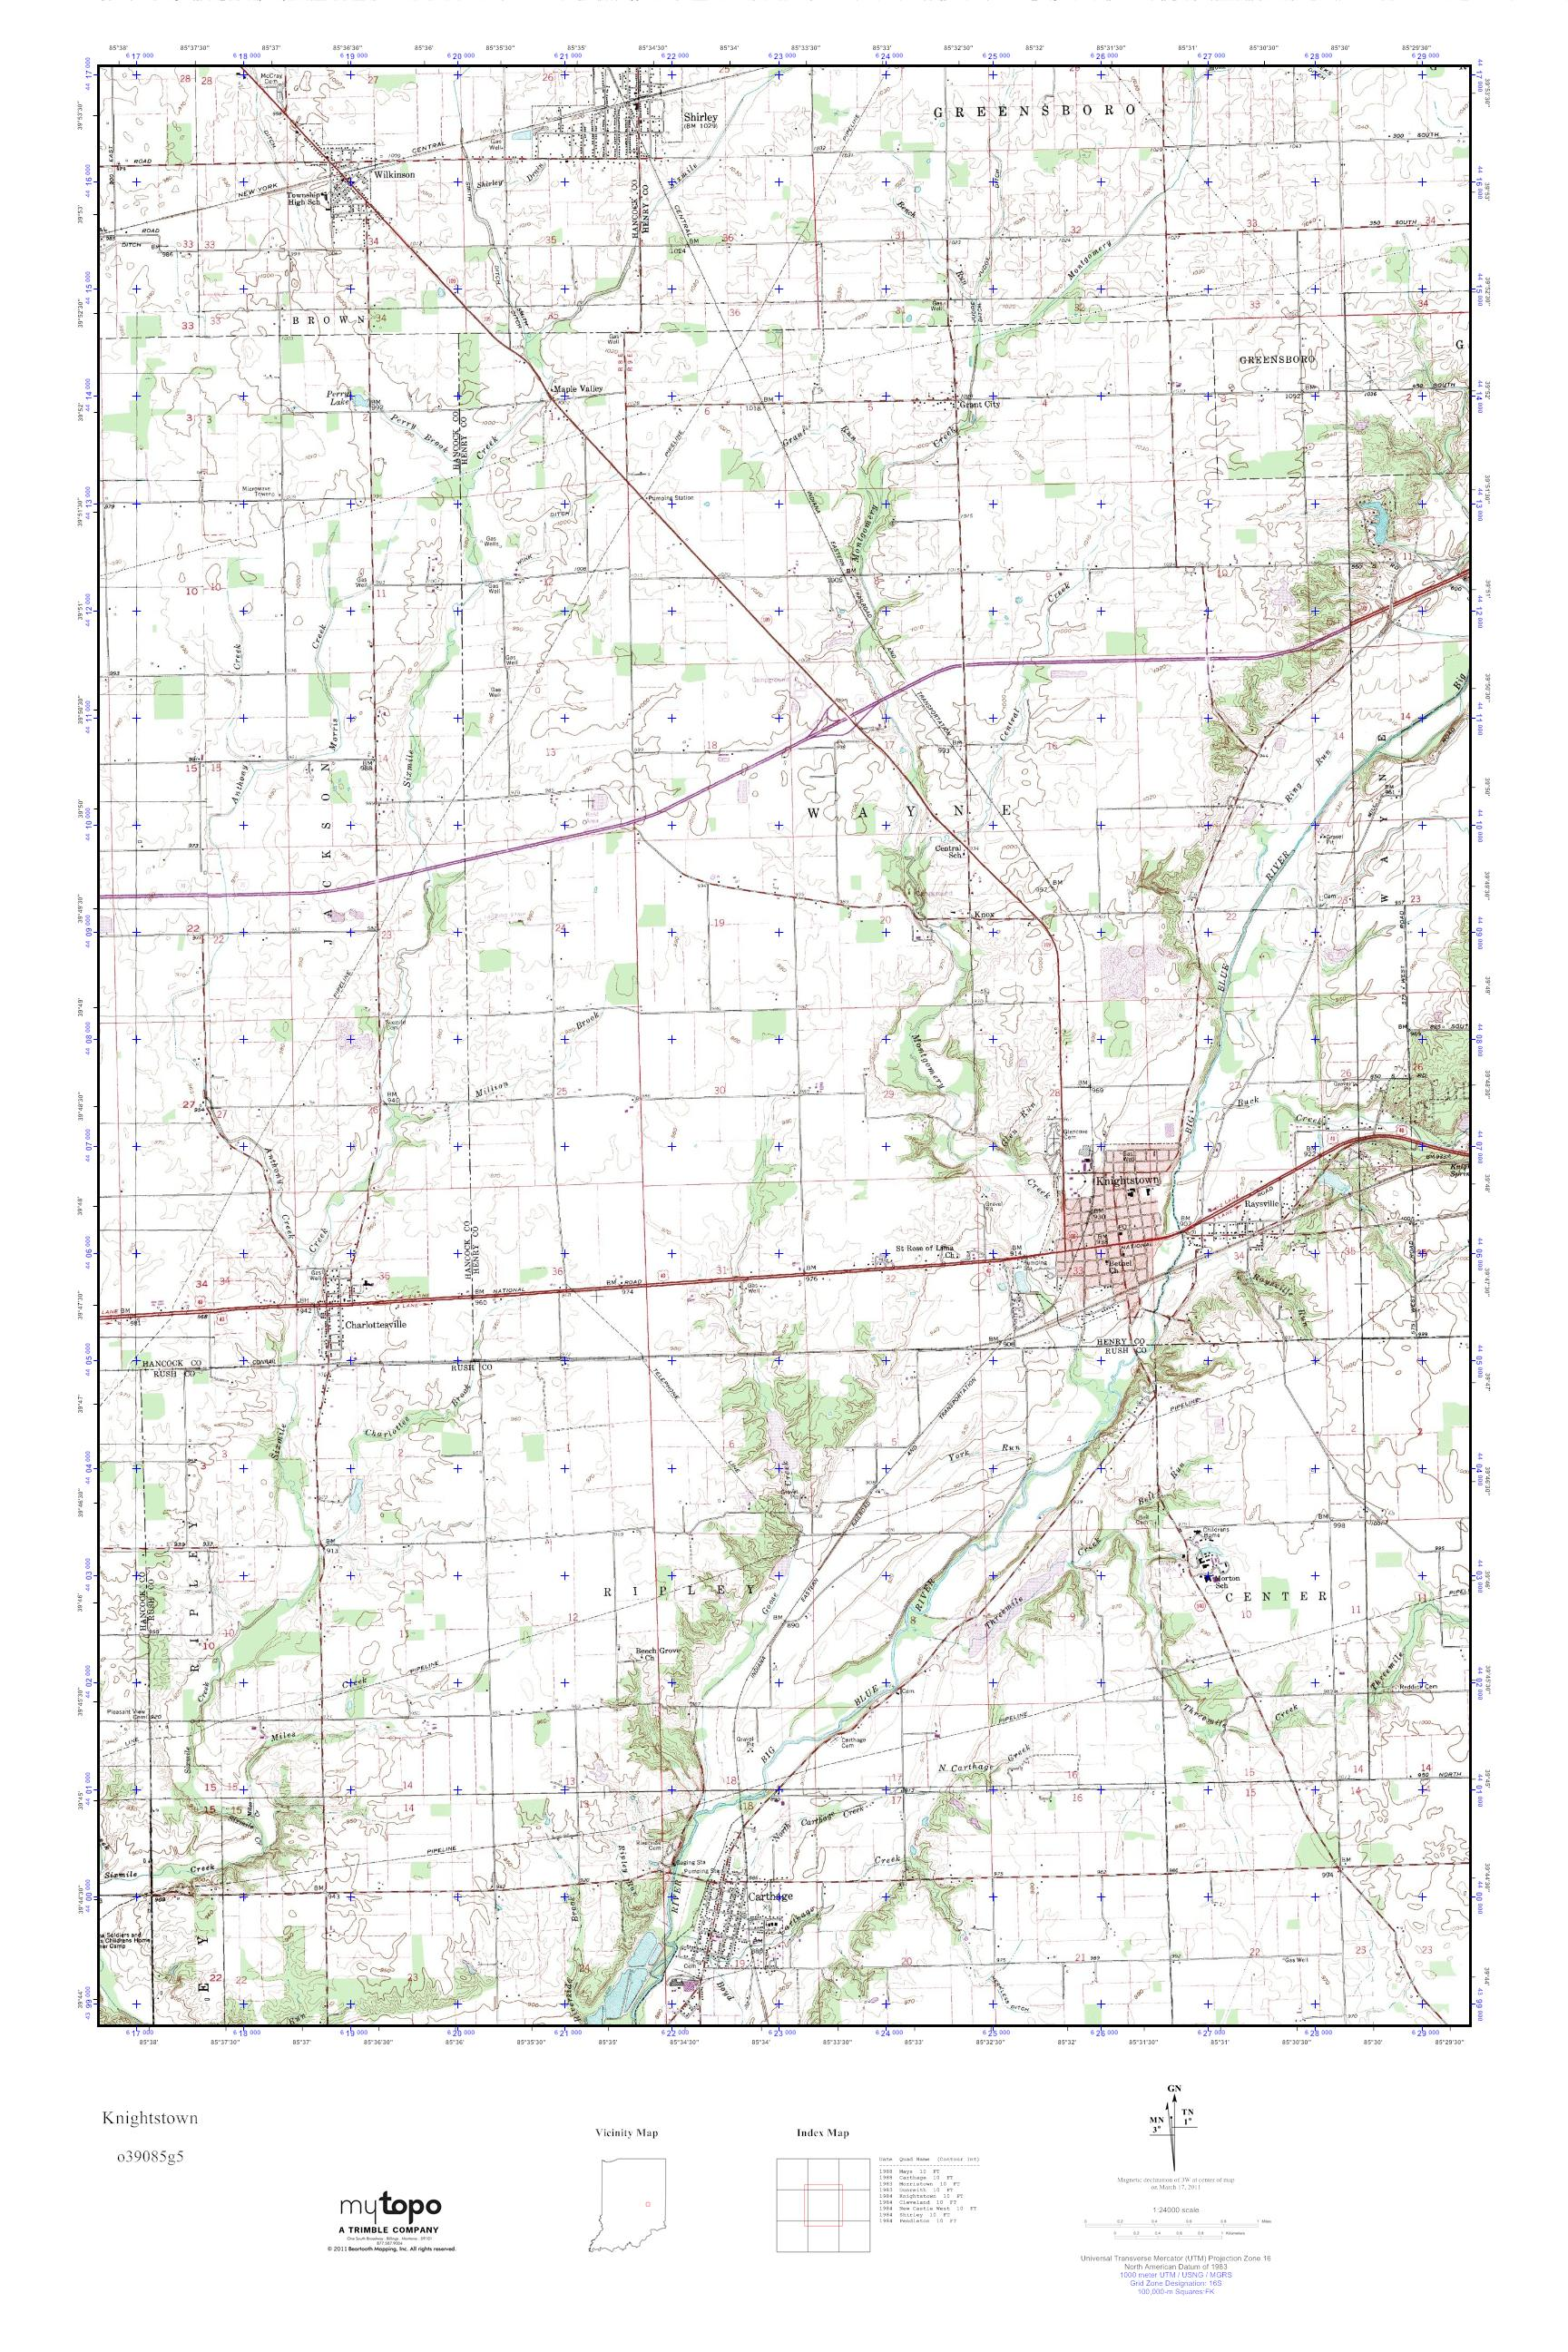 Knightstown Indiana Map.Mytopo Knightstown Indiana Usgs Quad Topo Map